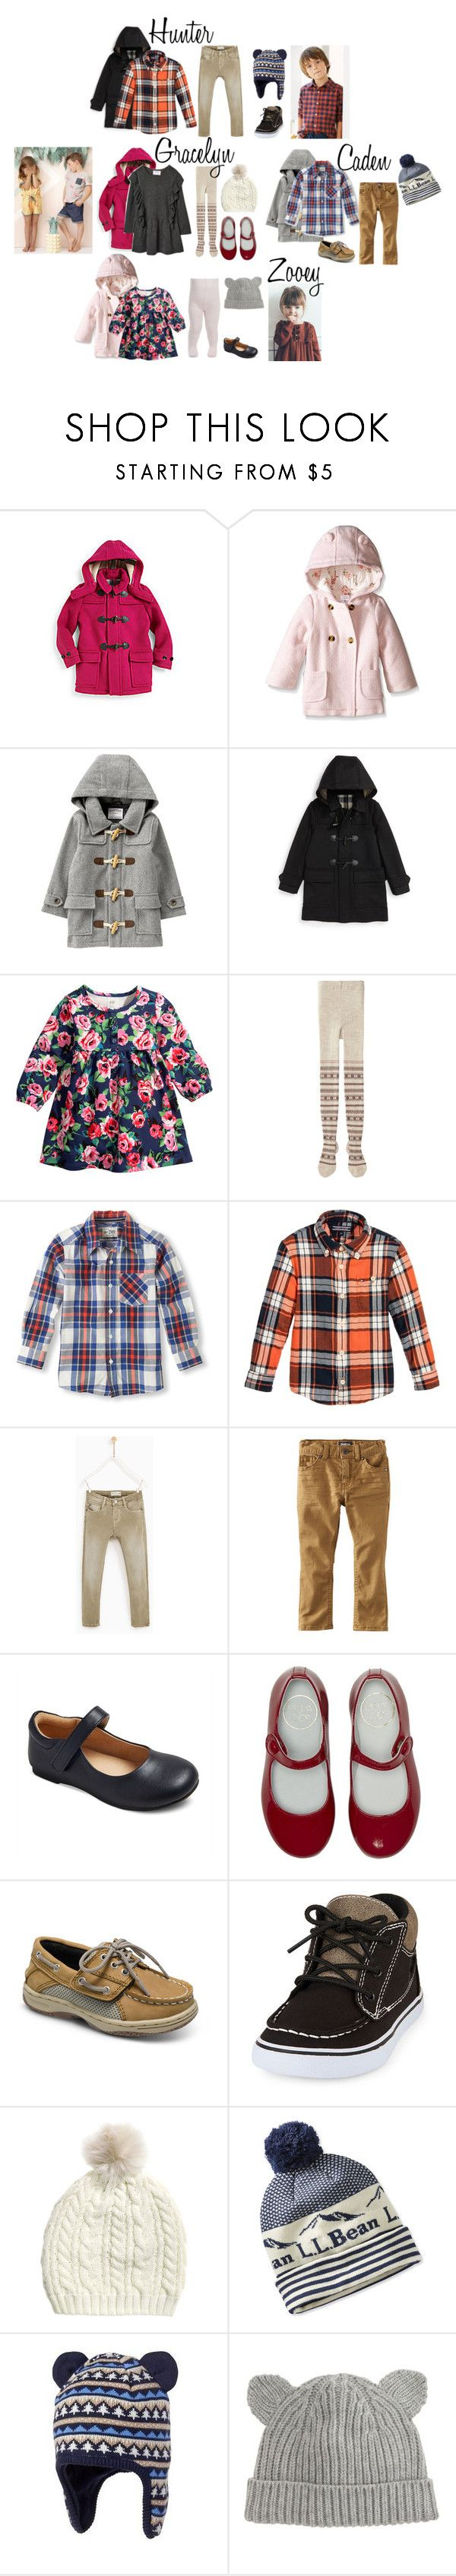 """11.12.17 